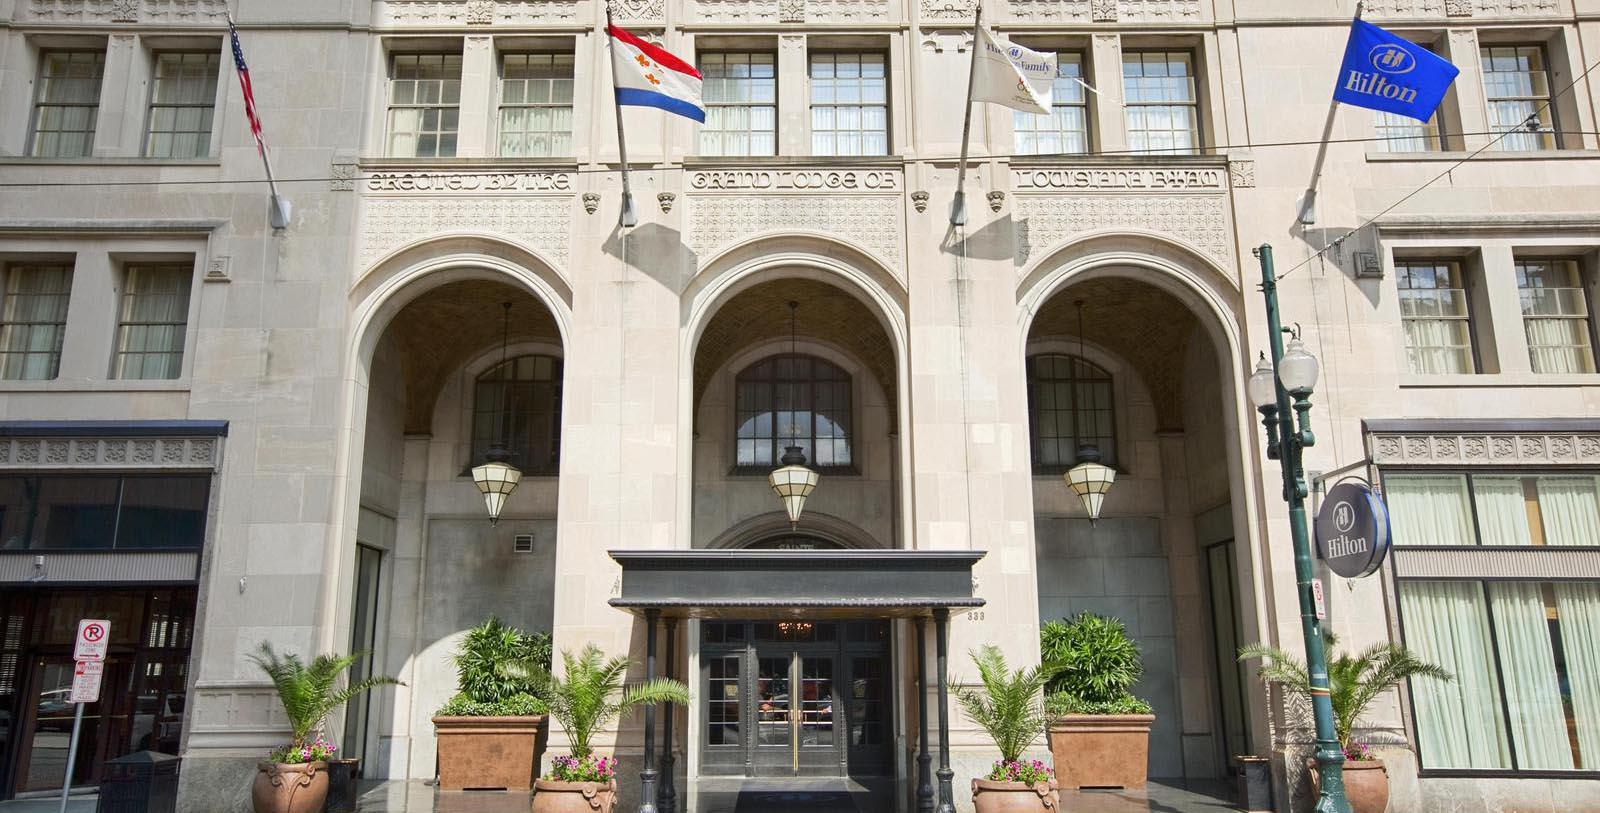 Image of hotel exterior entrance Hilton New Orleans/St. Charles Avenue, 1926, Member of Historic Hotels of America, in New Orleans, Louisiana, Overview